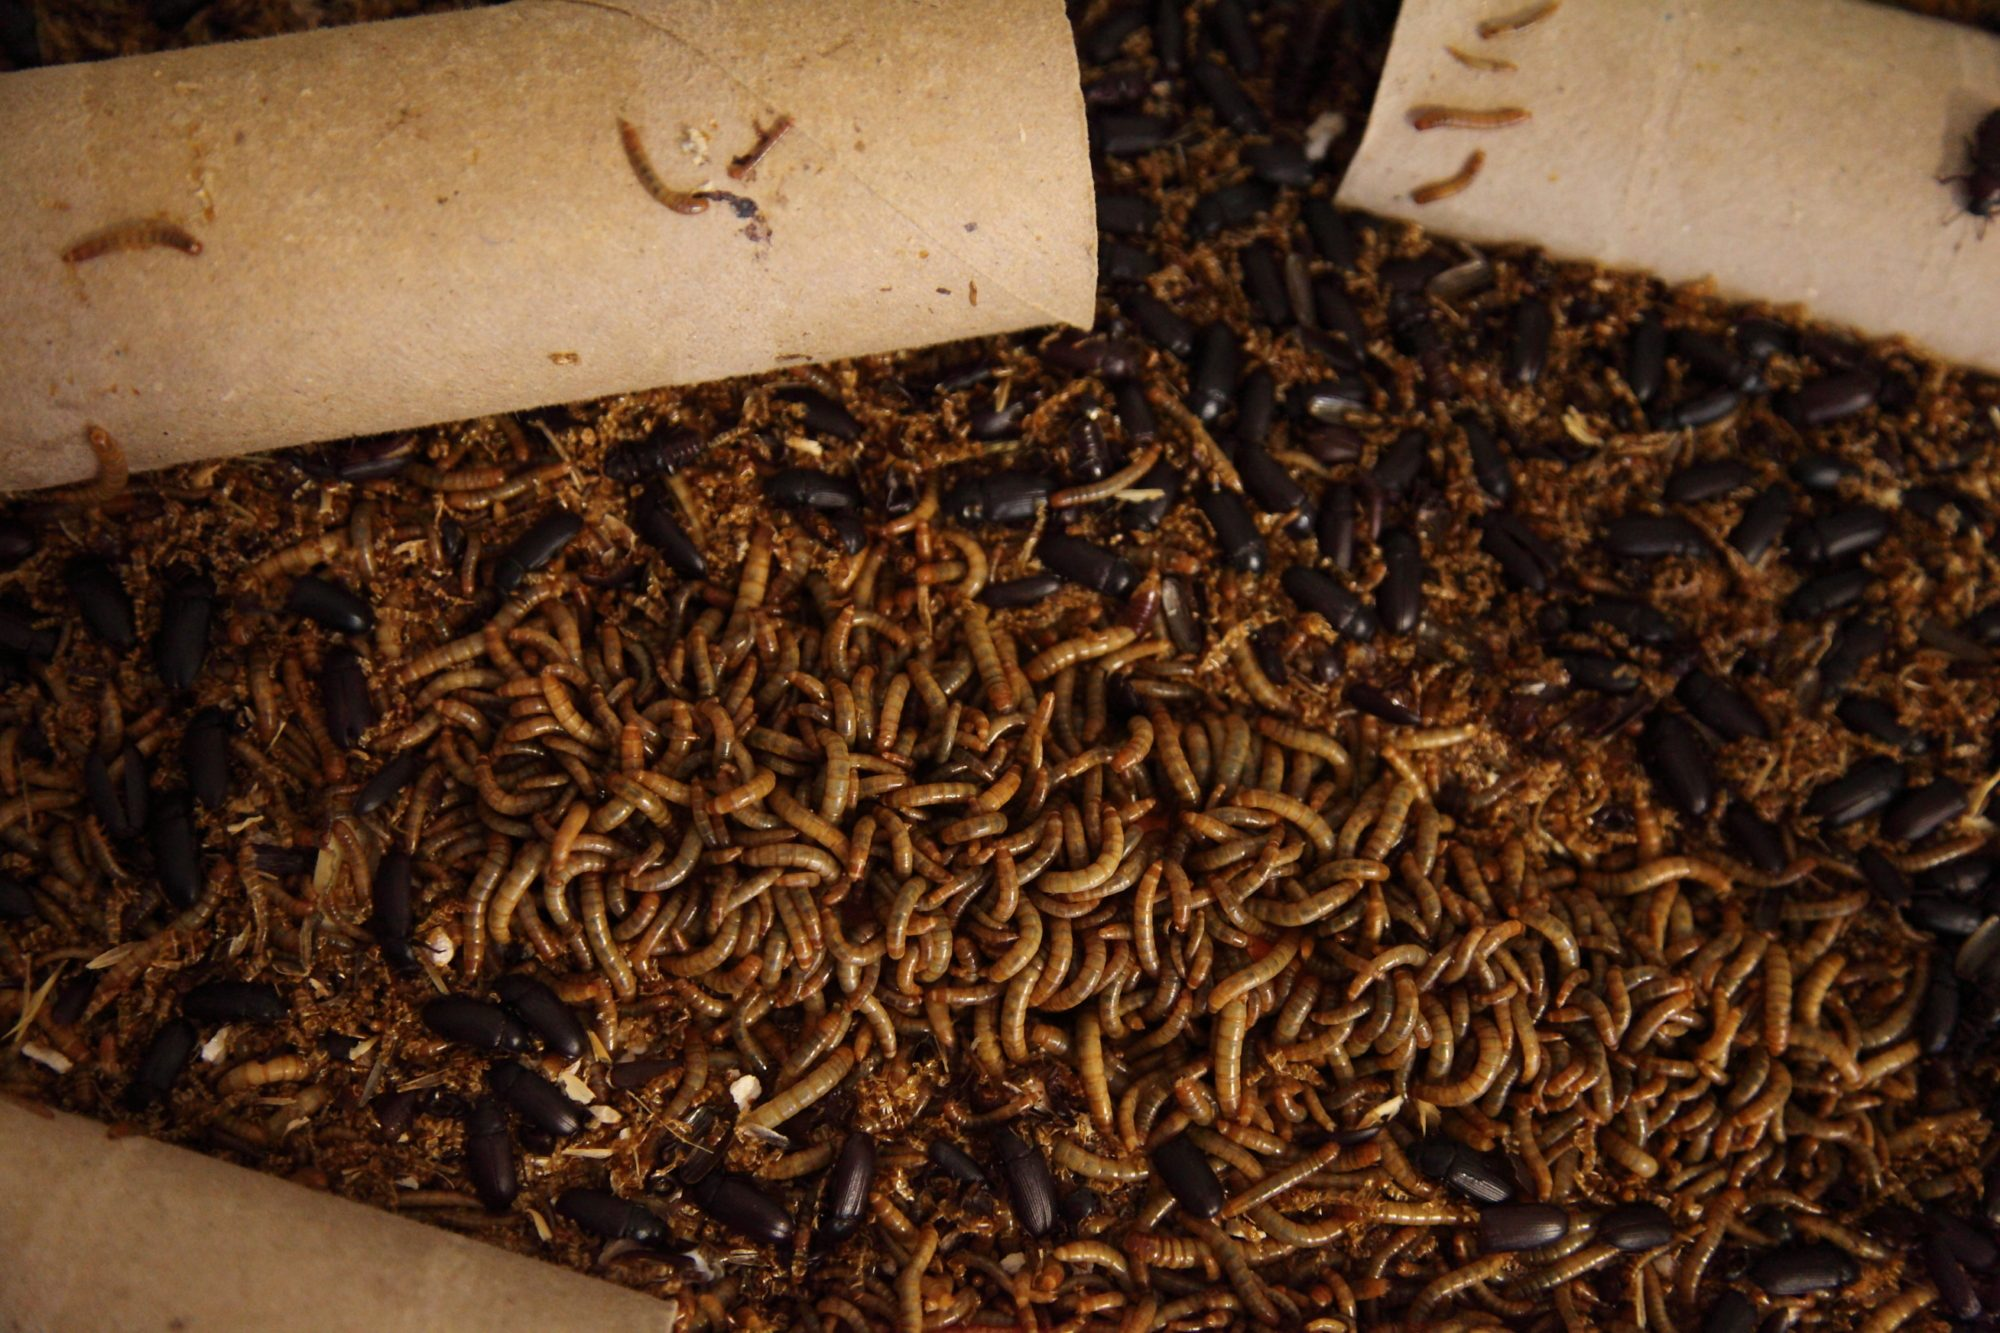 deek's photos in Mealworm farming